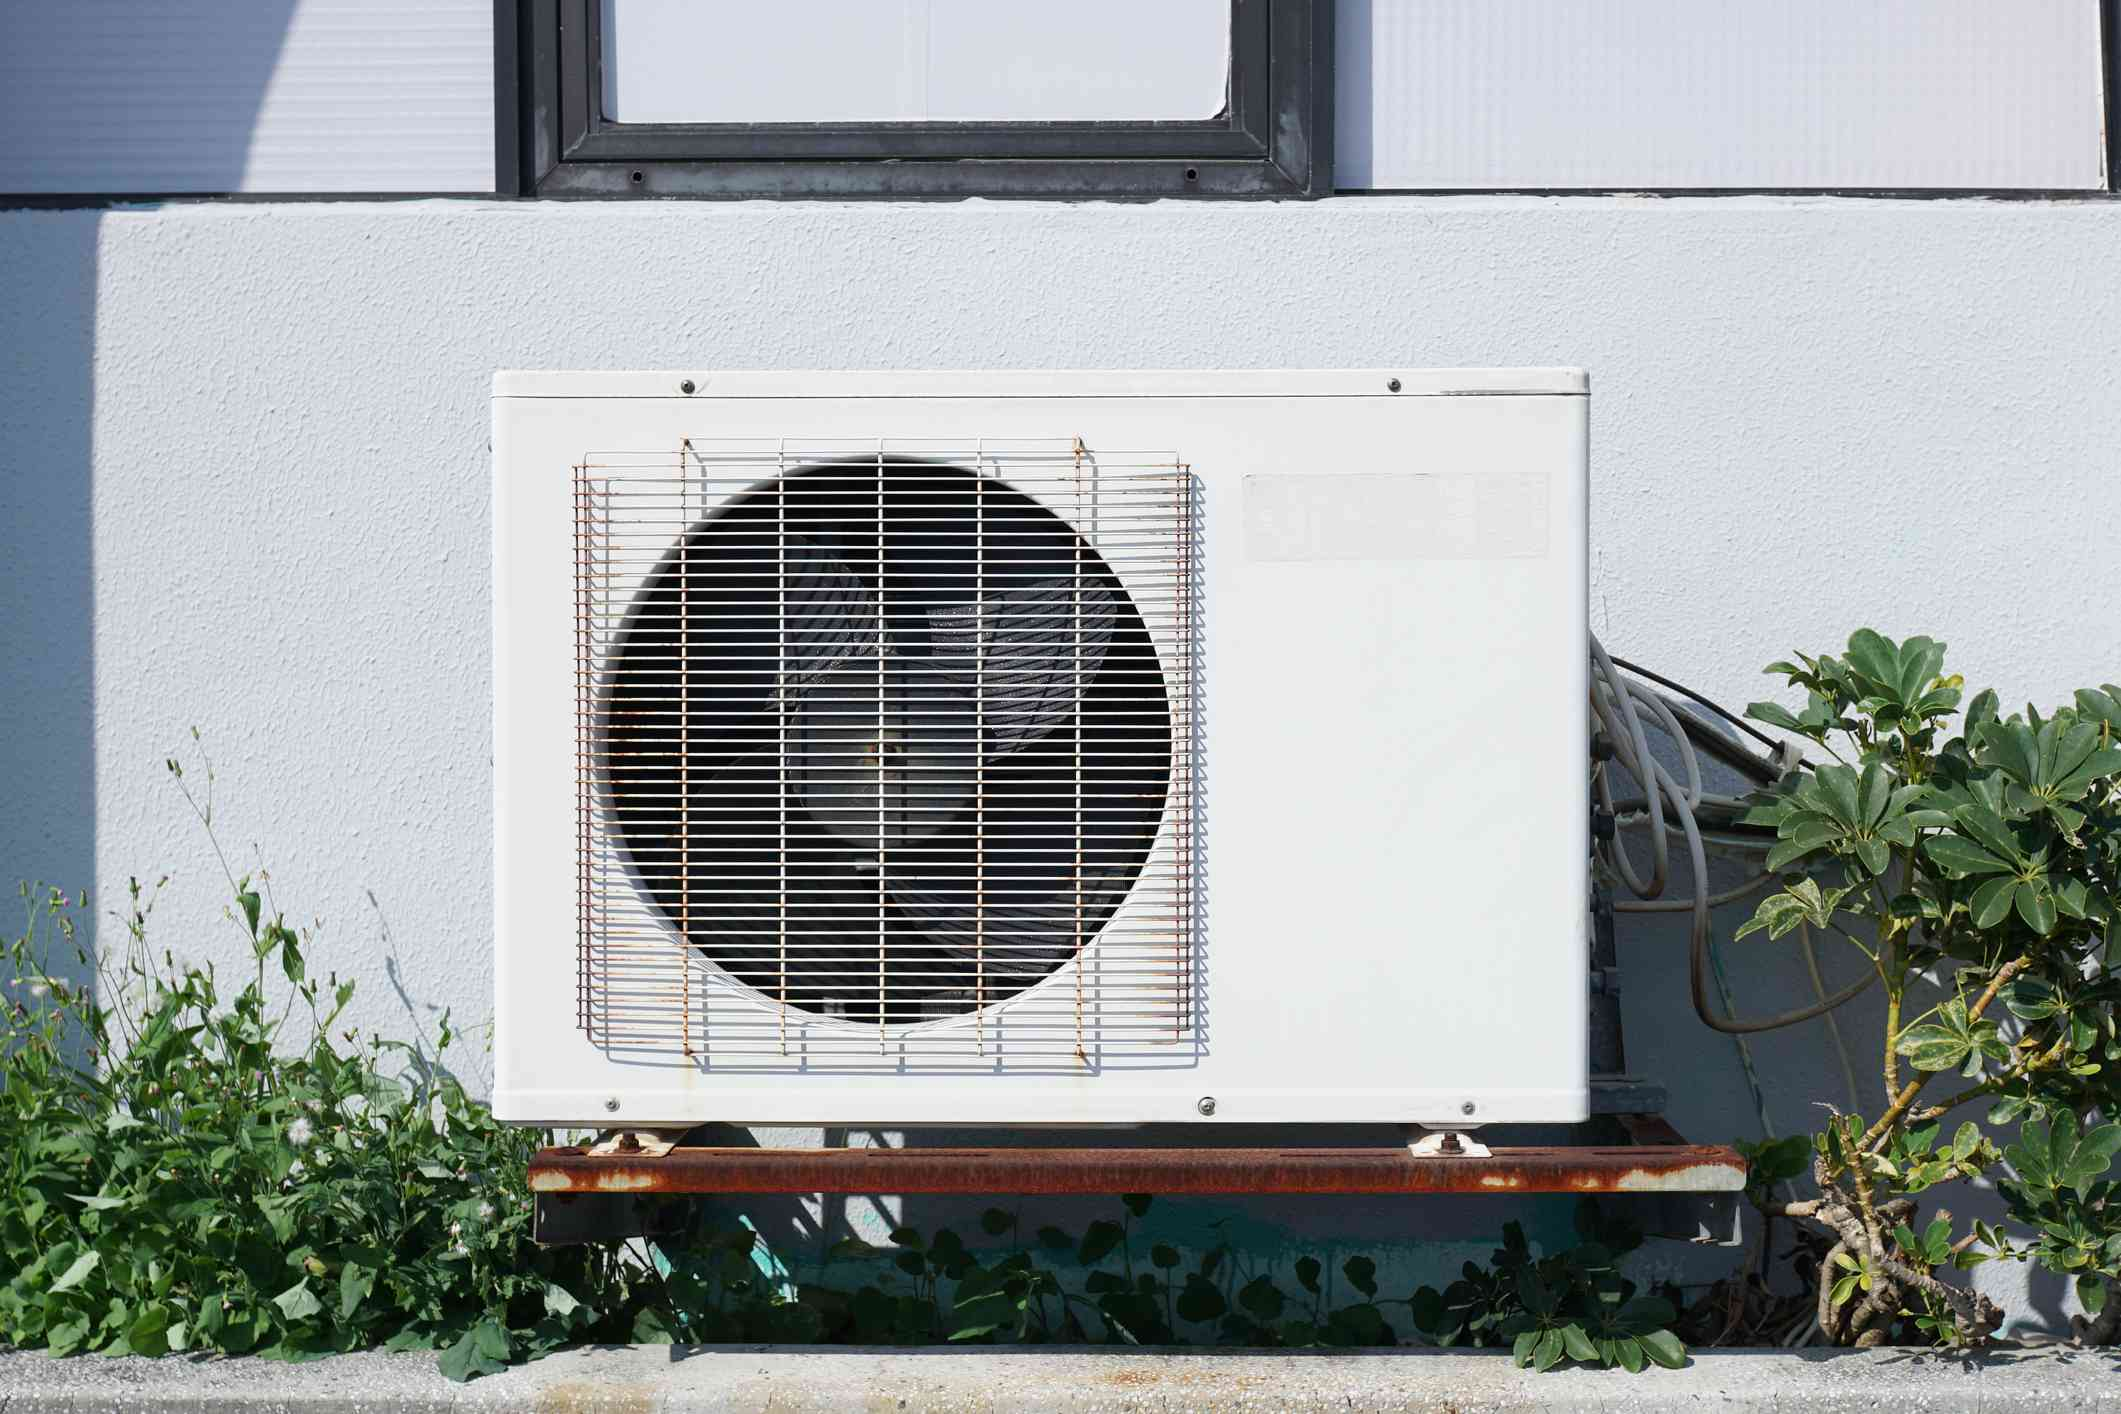 An air compressor next to a building used as part of an air conditioning system.